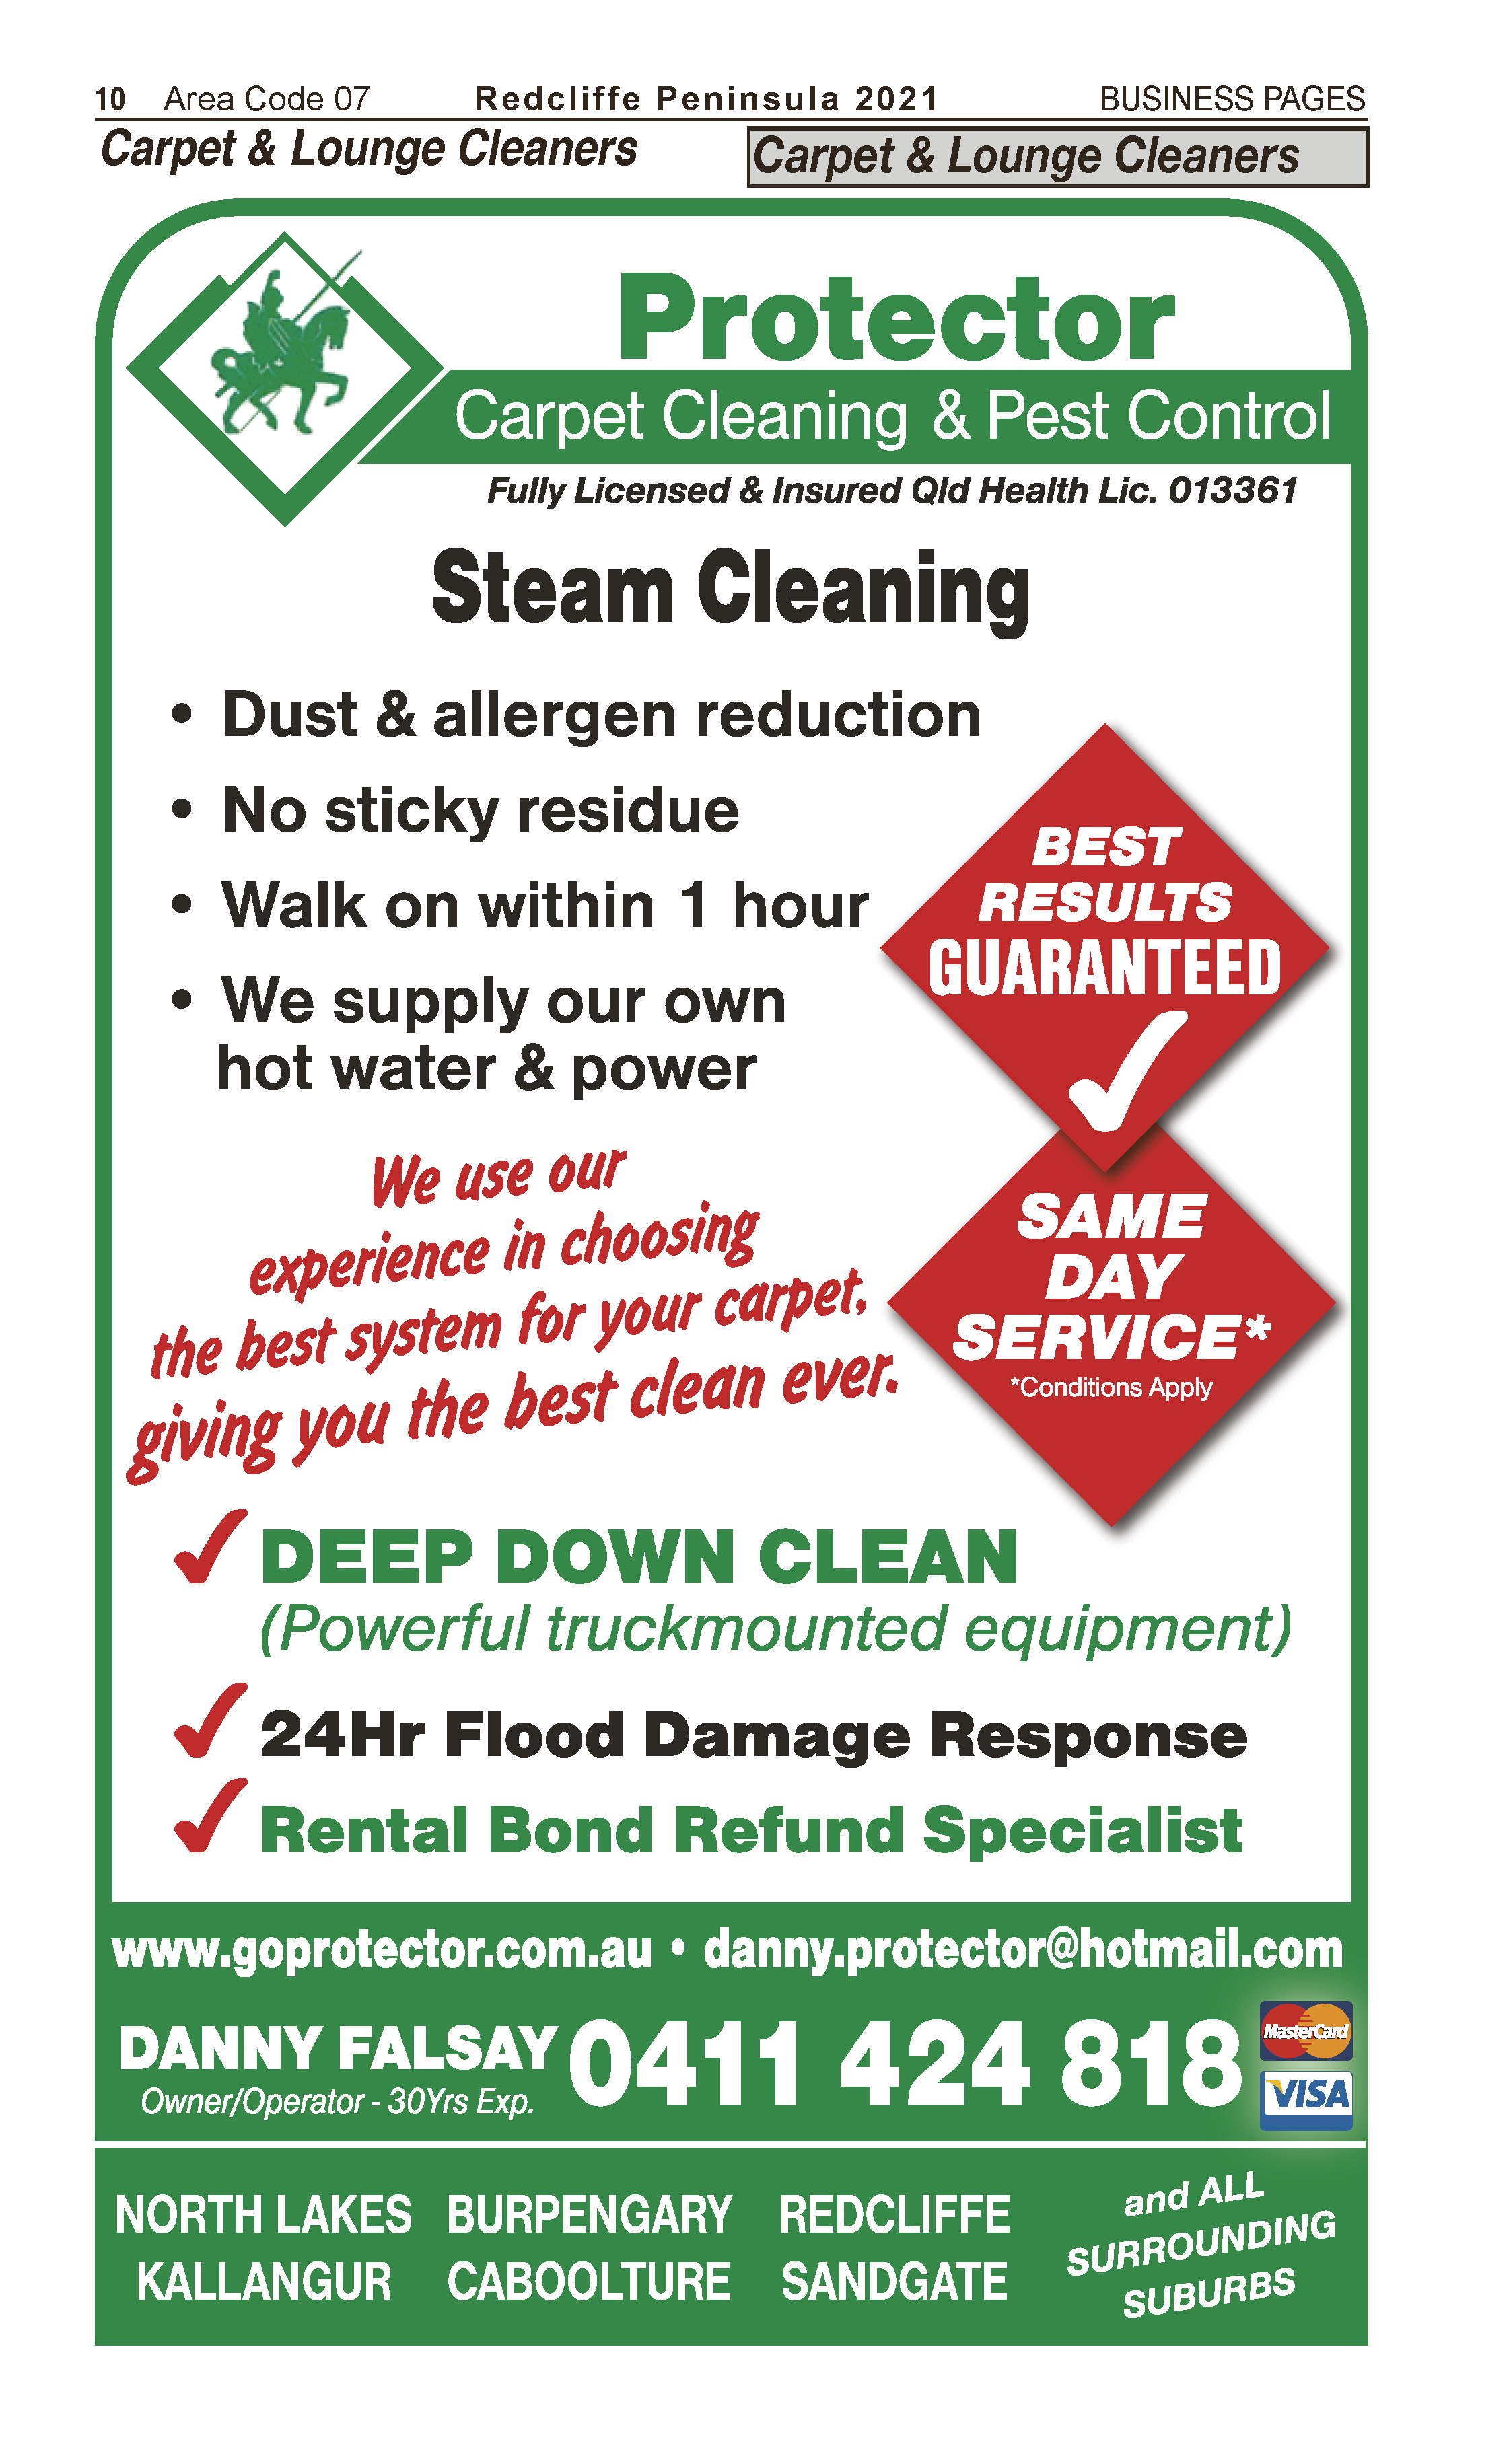 Protector Carpet Cleaning & Pest Control | Upholstery Cleaners in Kippa Ring | PBezy Pocket Books local directories - page 10